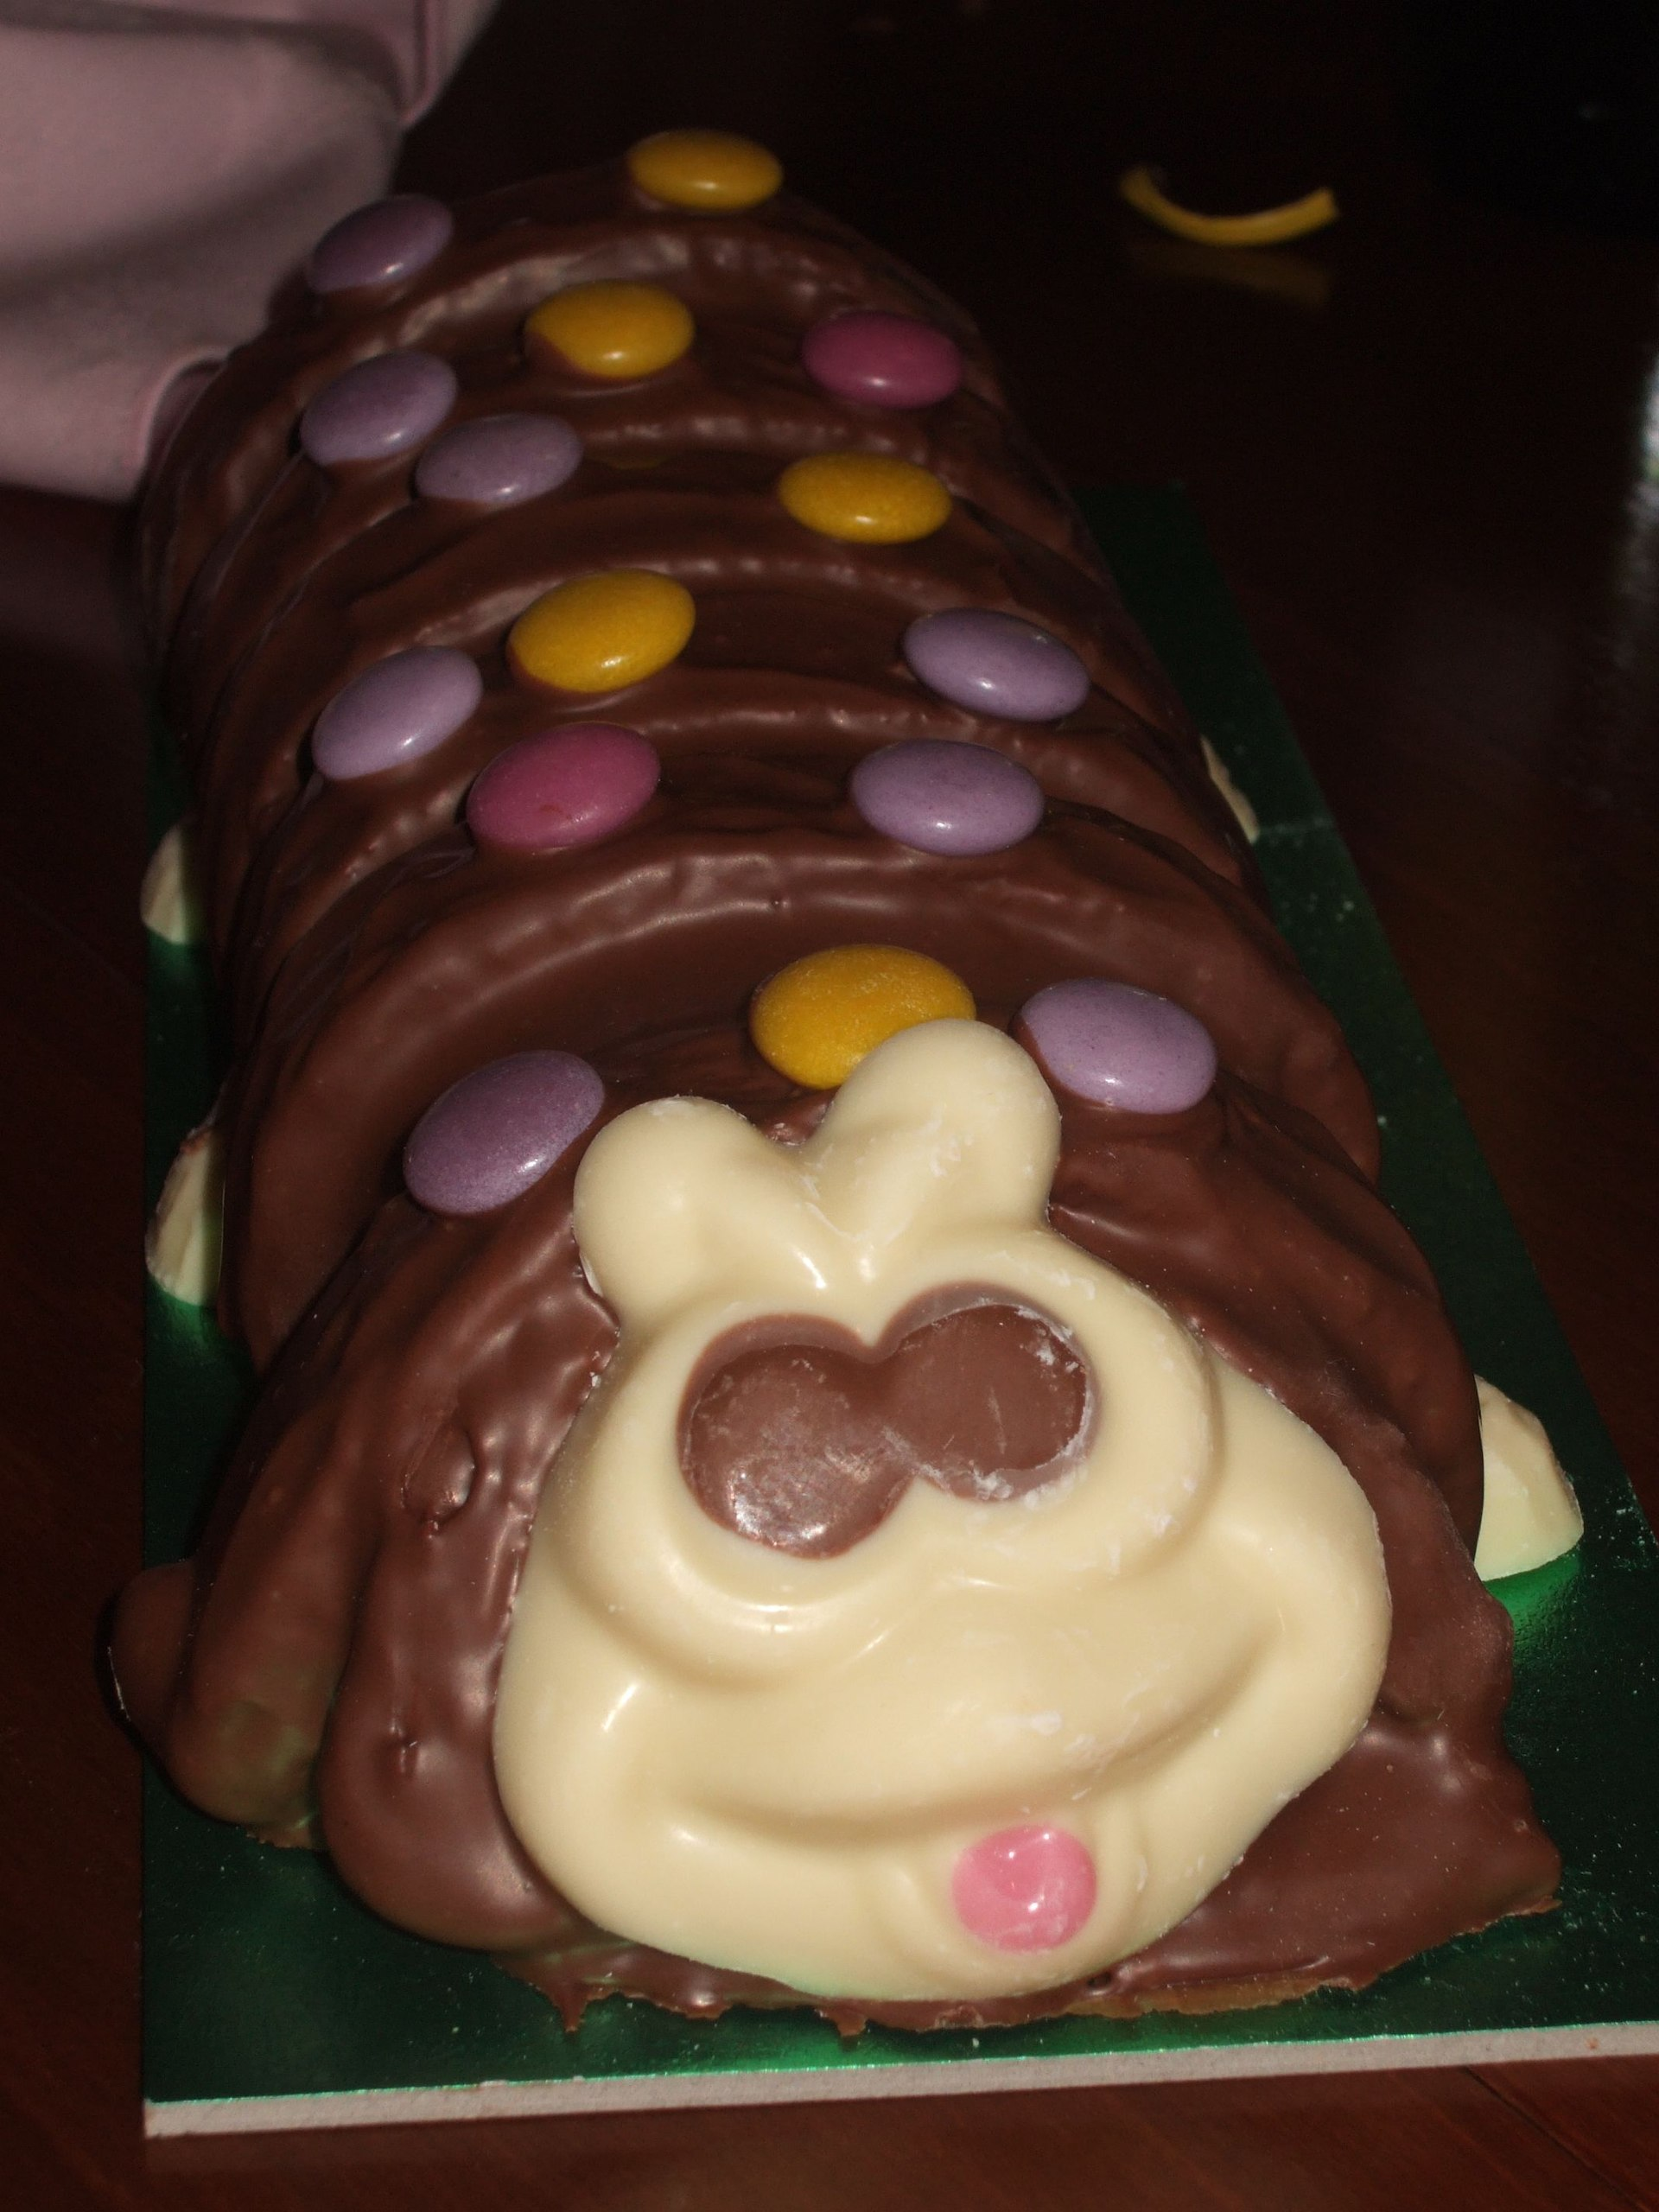 Px Colin The Caterpillar Cake together with C B D Ba B additionally Img additionally Chocolate Drip Cake as well Px Milhojas. on white chocolate how is made